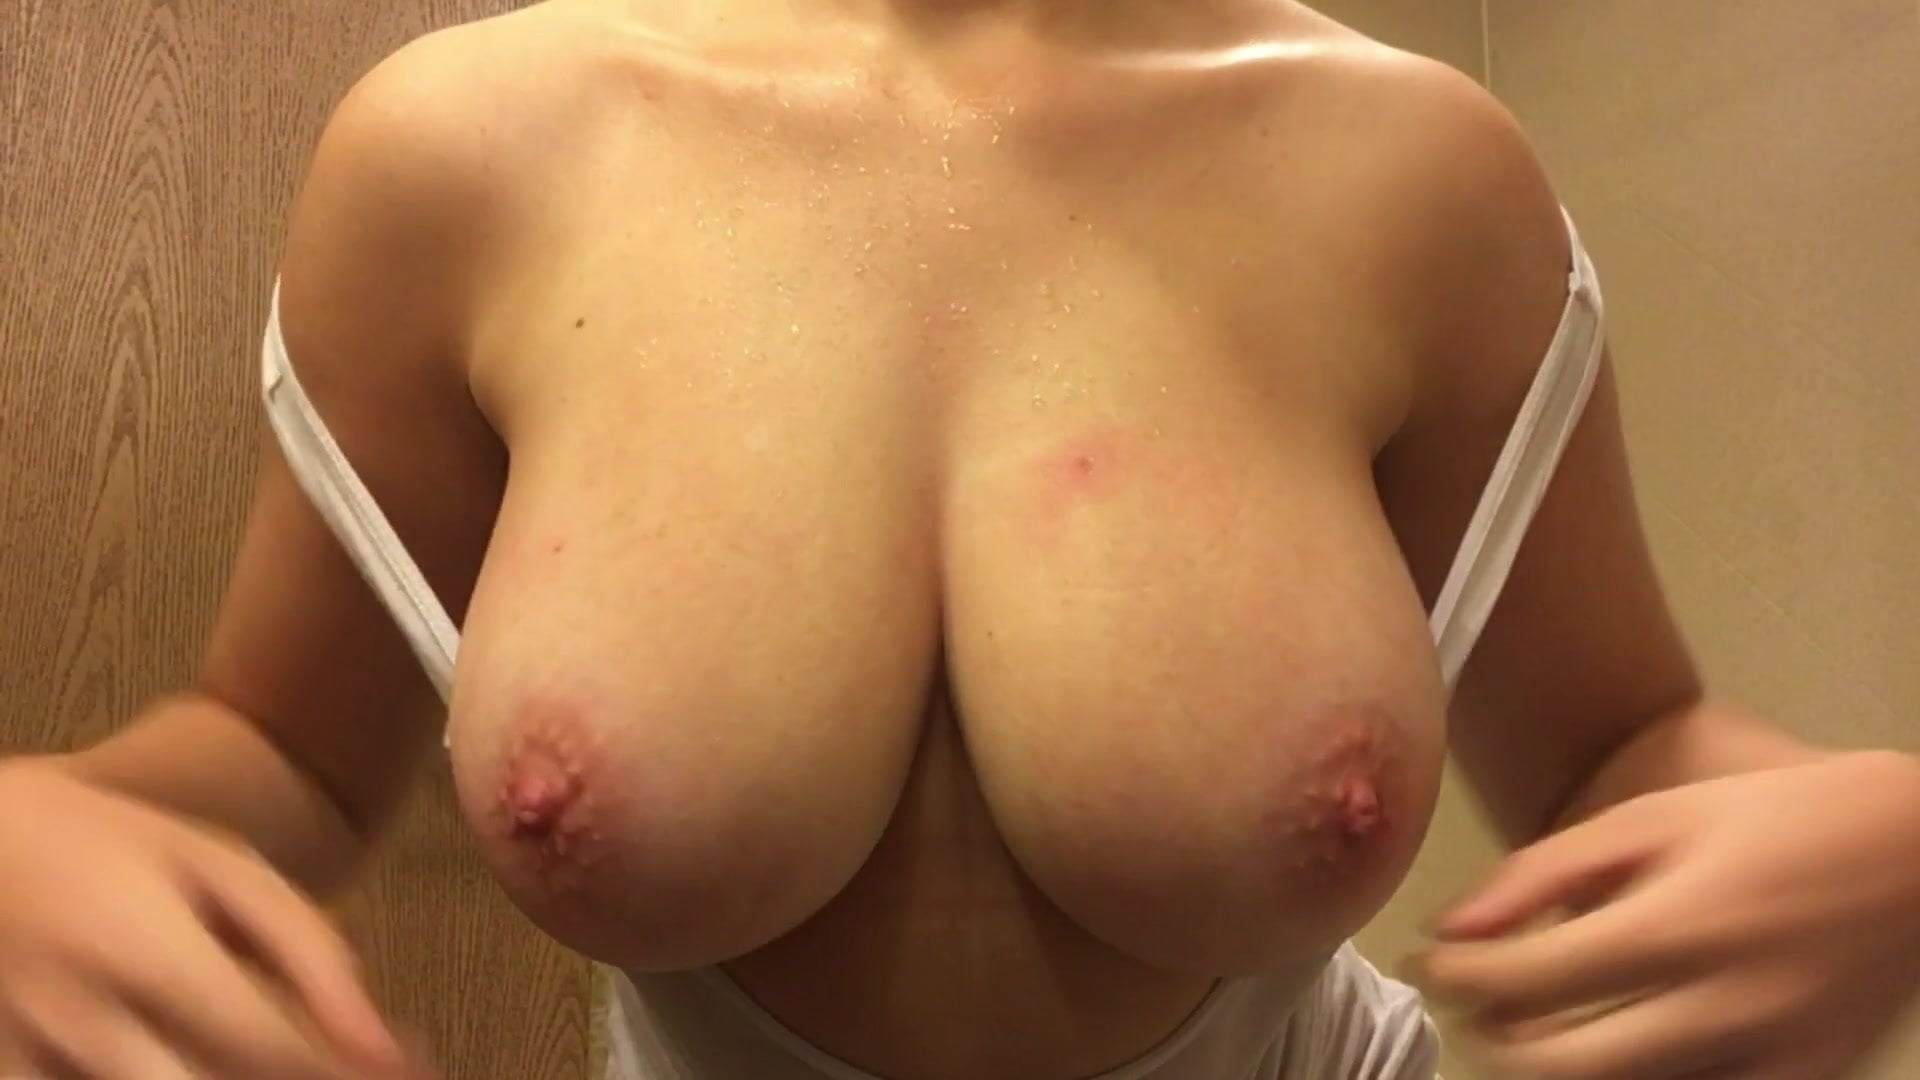 Her big tits in a tank top Huge Natural Tits White Tank Top Heaven Porn F0 Xhamster Xhamster